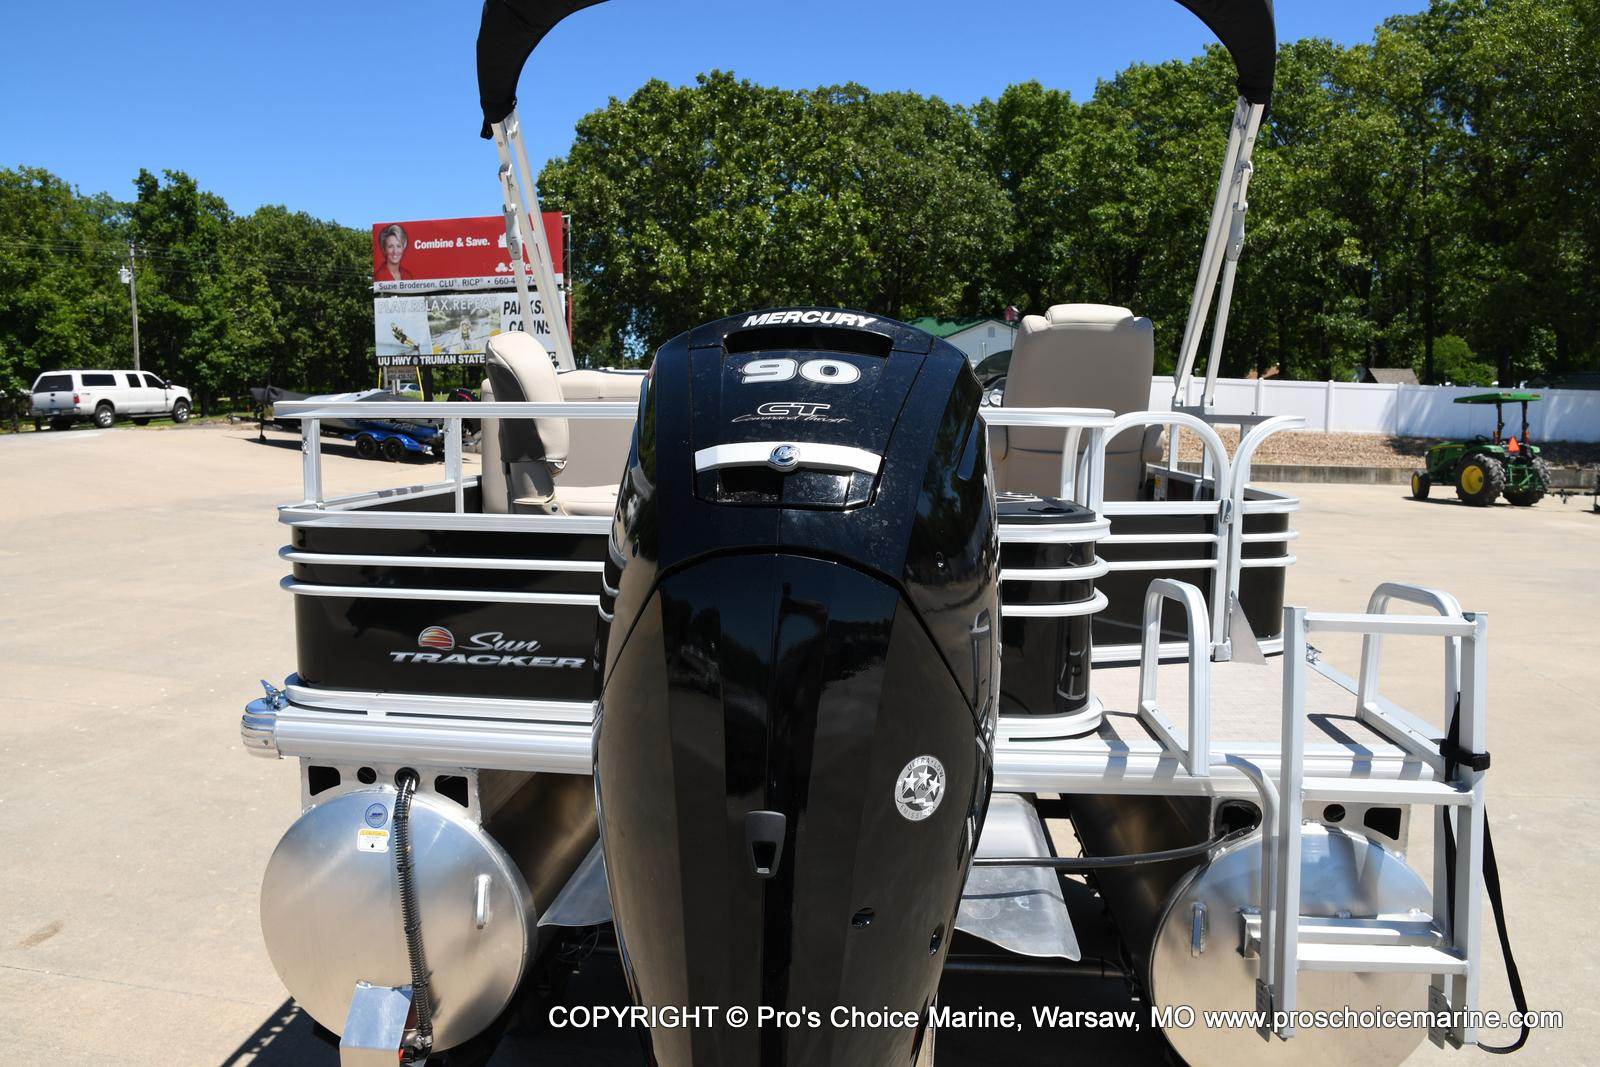 2021 Sun Tracker boat for sale, model of the boat is Fishin' Barge 20 DLX & Image # 20 of 50